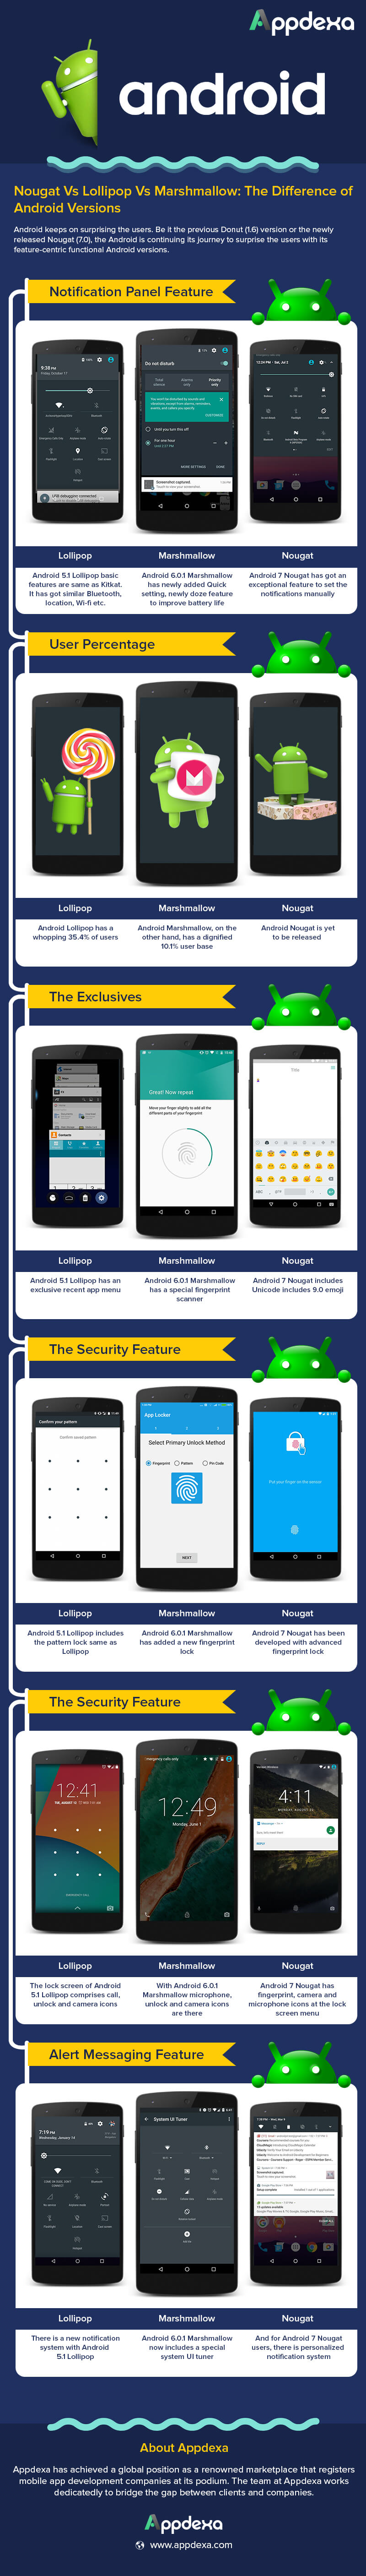 Android Platform Infographic